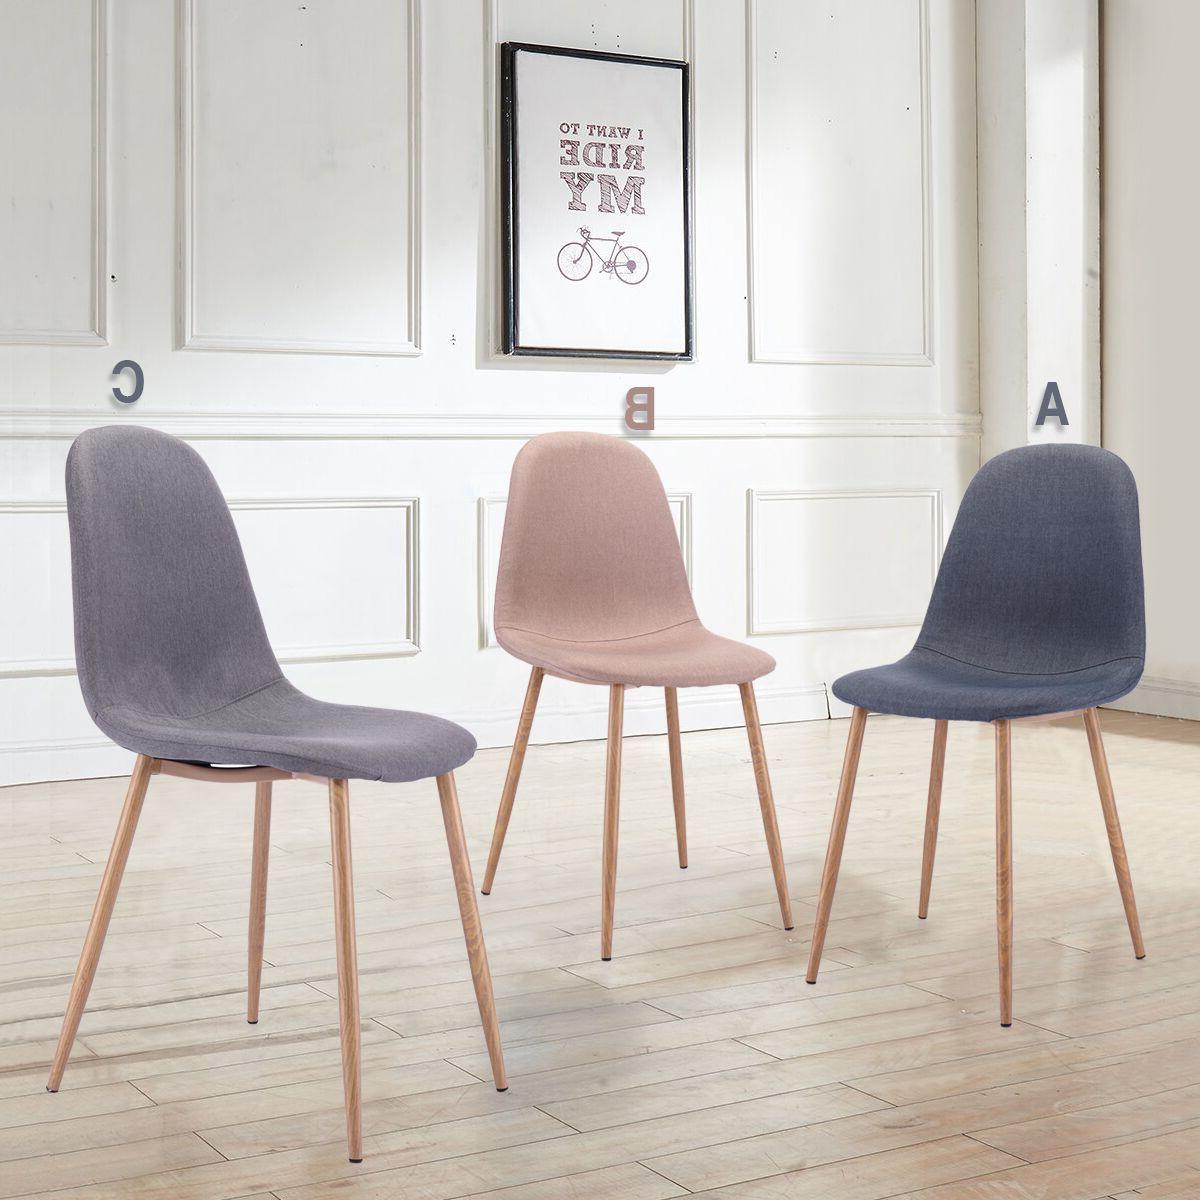 dining chairs set of 4 mid century